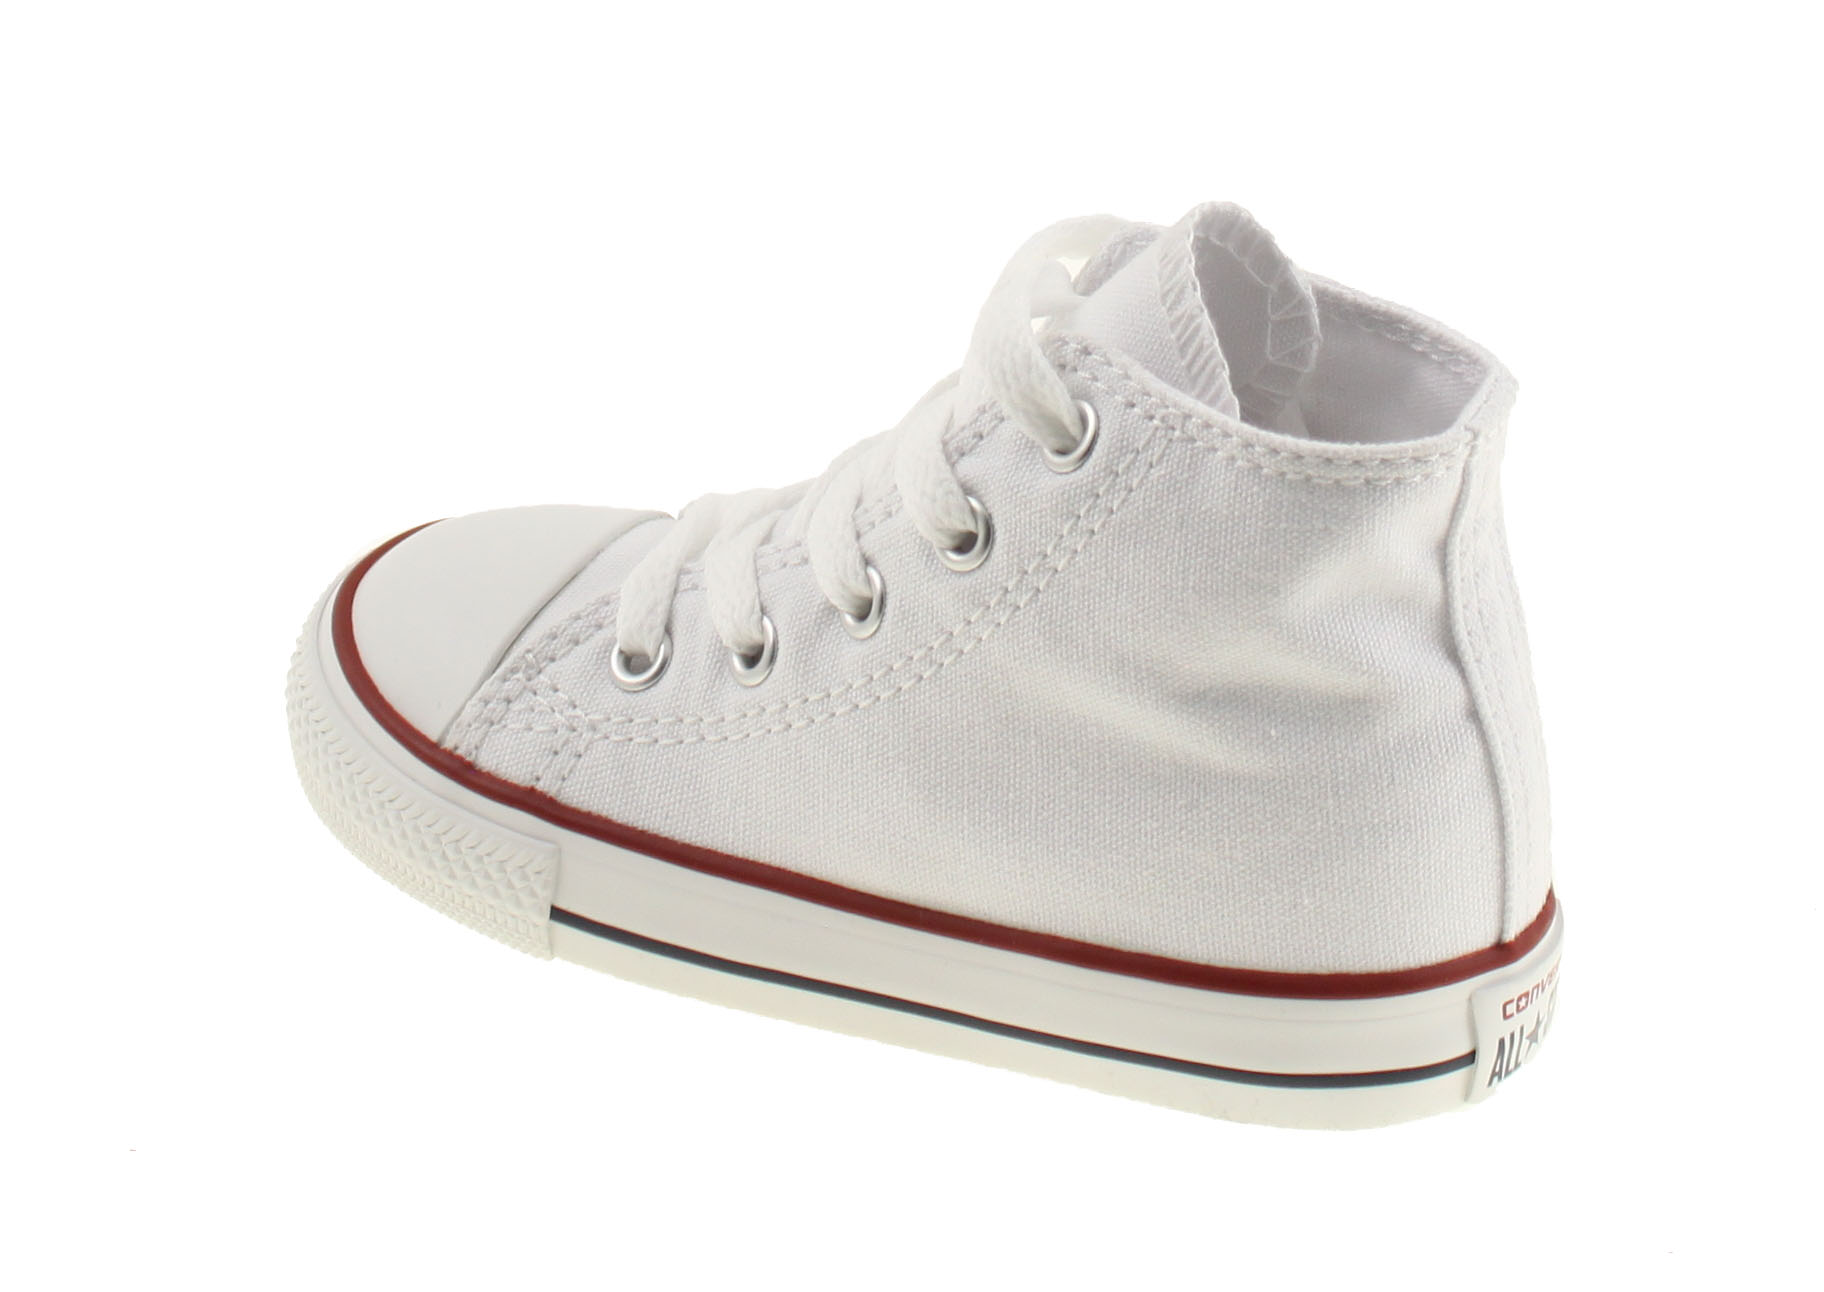 Converse All Star High Wit Baby Peuter. 7J253. Product afbeelding Product  afbeelding Product afbeelding Product afbeelding